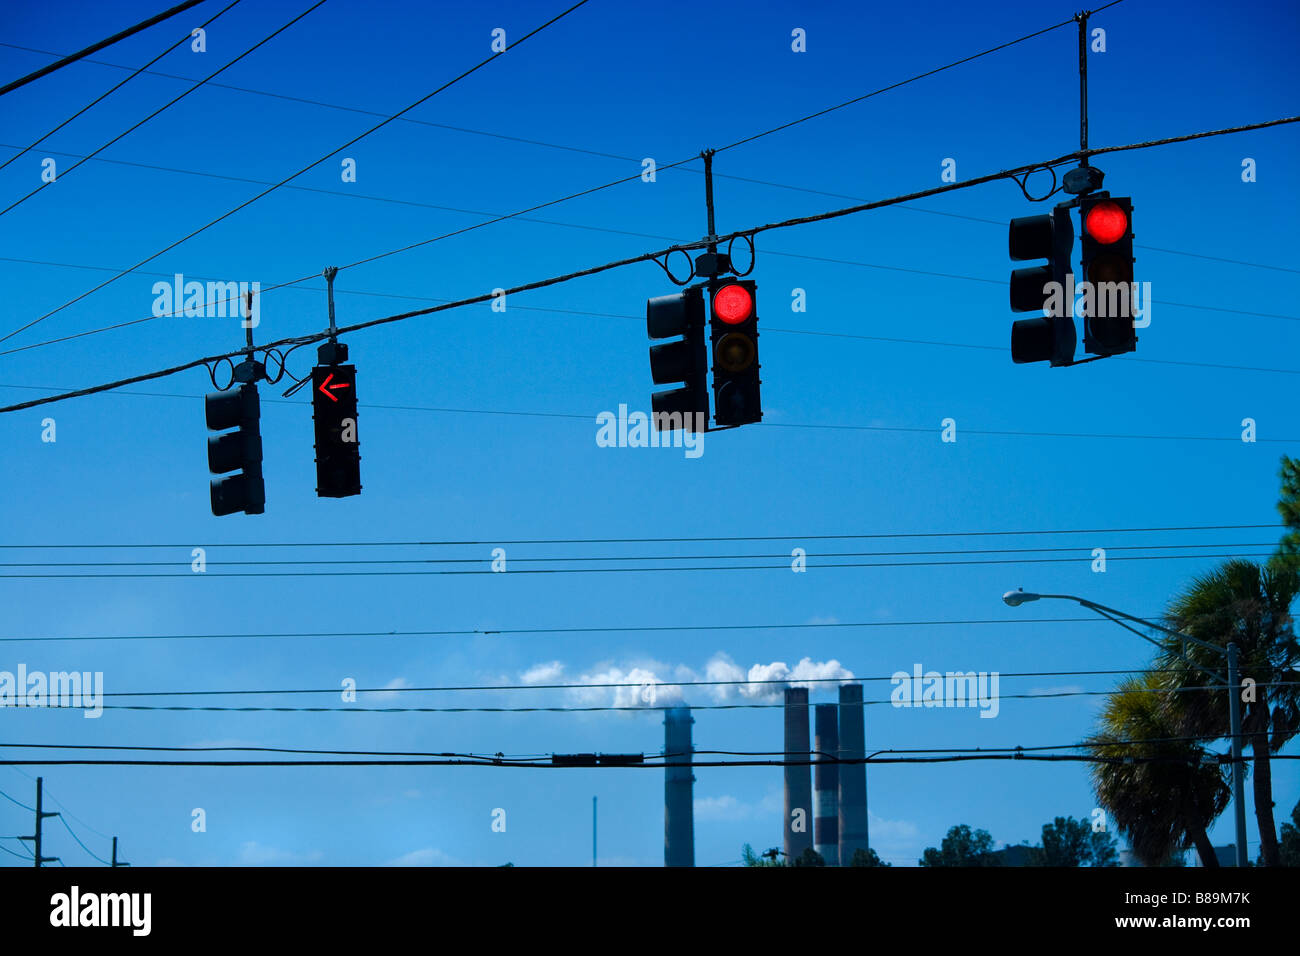 Traffic lights in the Tampa Bay area, Florida, US. The smoke stacks of the TECO power plant in the distance. - Stock Image